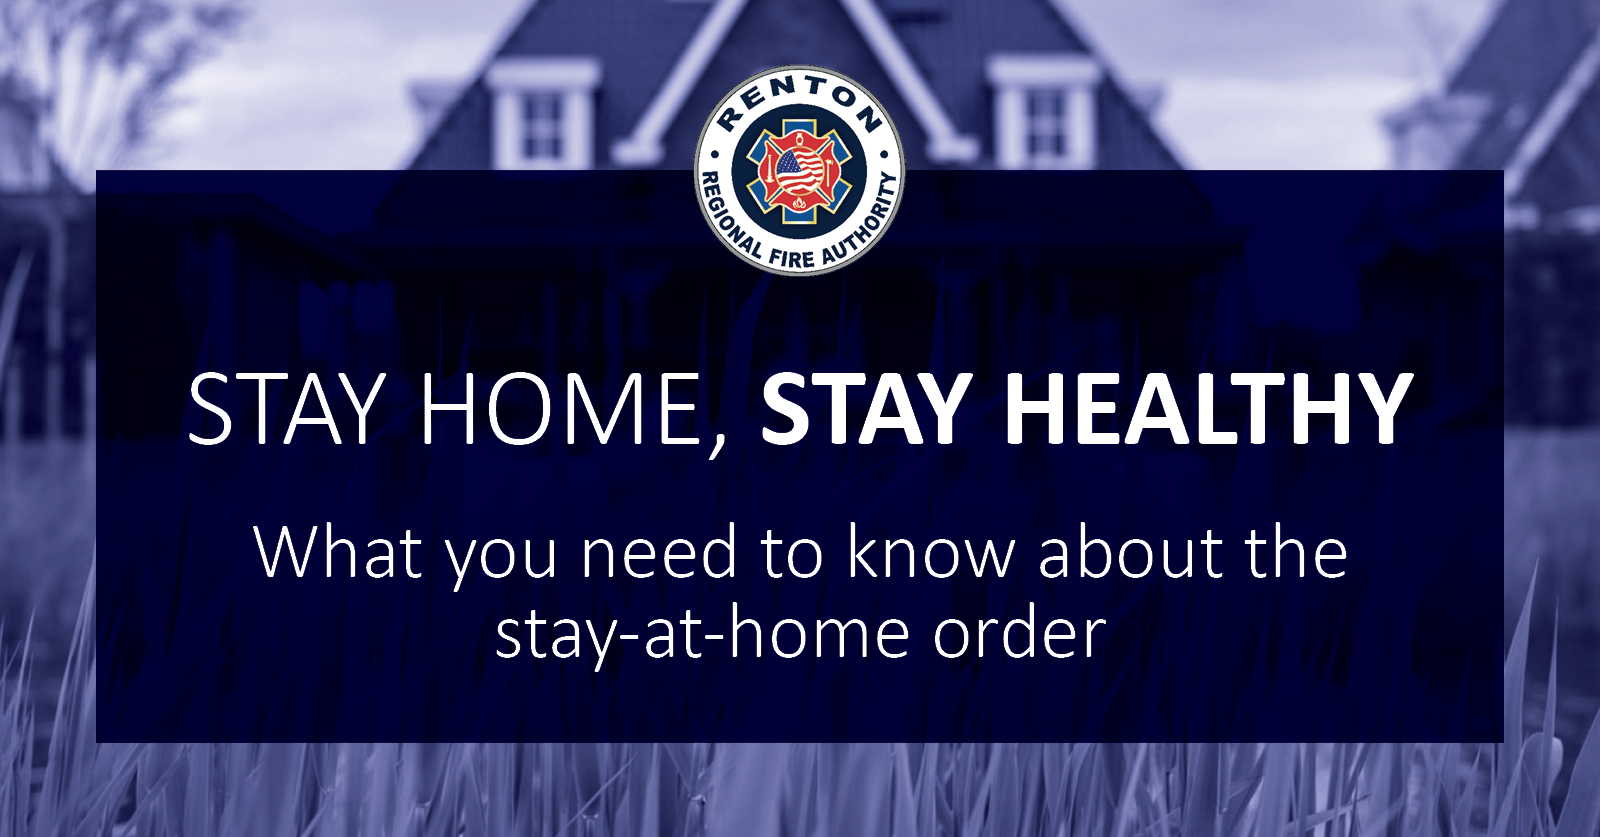 Stay Home, Stay Healthy Order